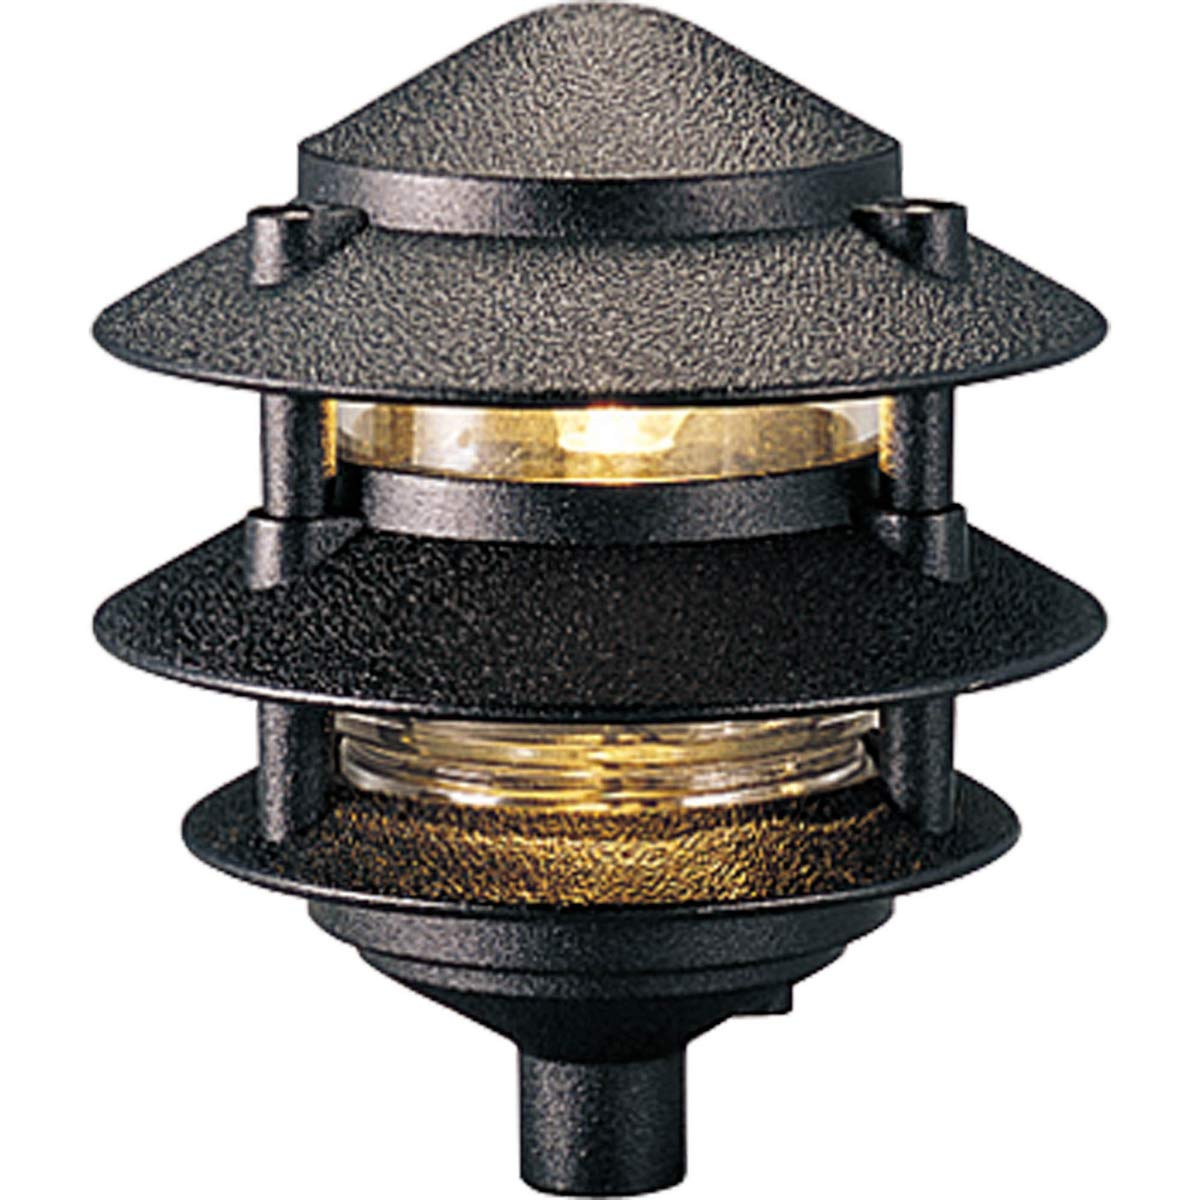 Progress Lighting P5204-31 Cast Aluminum Clear Glass Liner with 1/2-Inch NPS Threaded Fitting for Permanent or P5233 Installation, Black by Progress Lighting